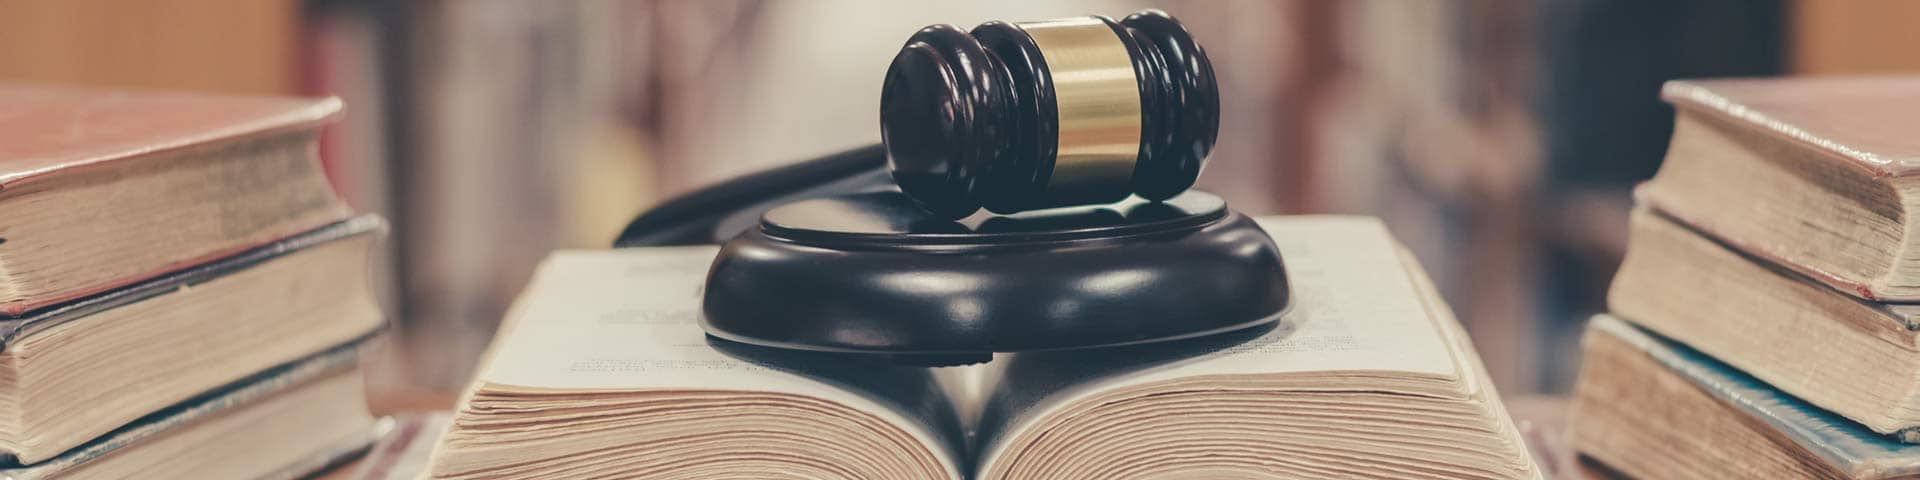 Gavel and block on a workers compensation law book